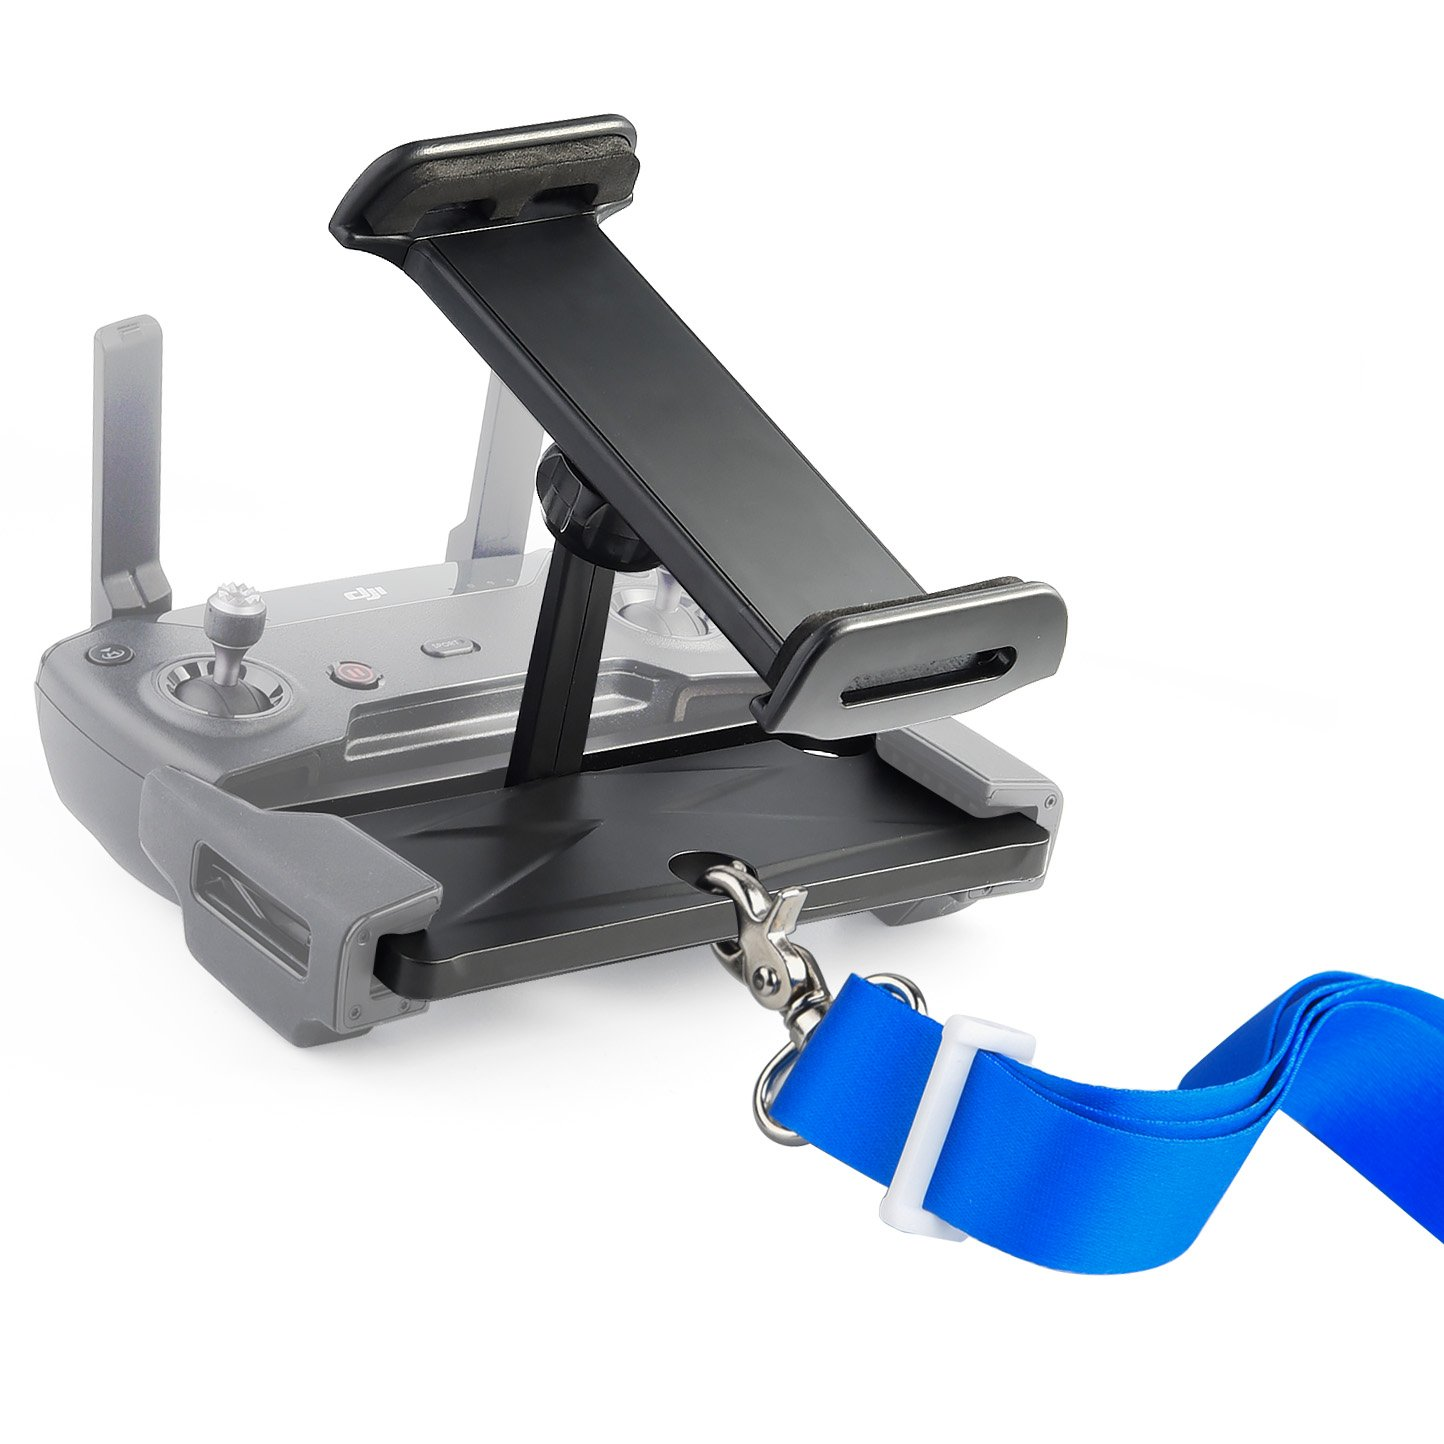 KUUQA Foldable Tablet Stand Holder Extender with Lanyard for Dji Mavic Air/ Mavic Pro/ Spark Remote Controller Device (Drone Not Included)